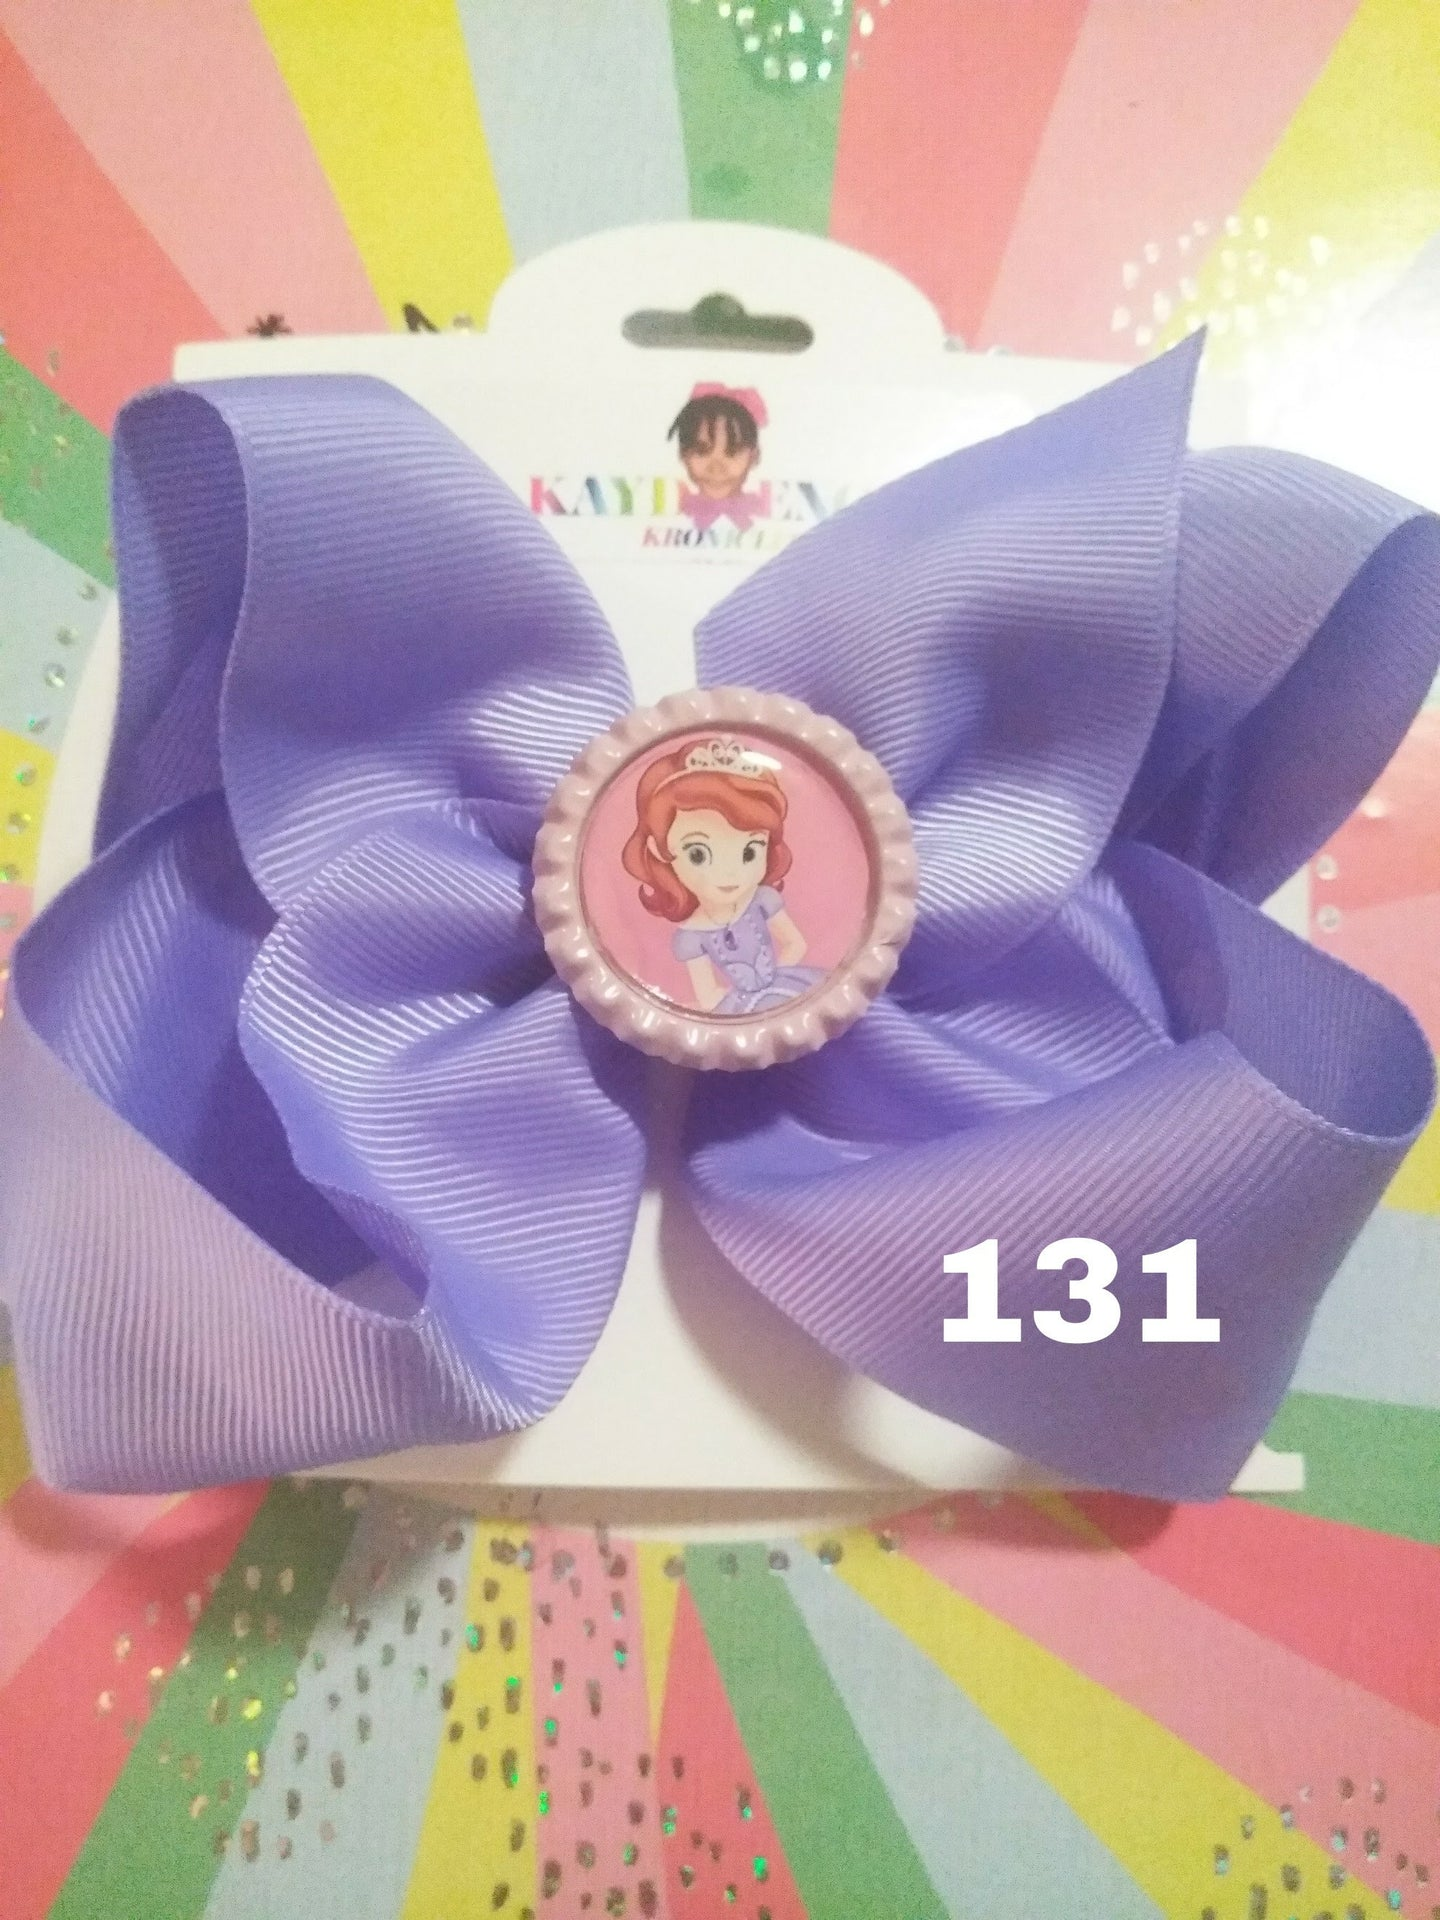 6 Inch Solid Colored Hair Bow with Princess Sophia the 1st Embellishment